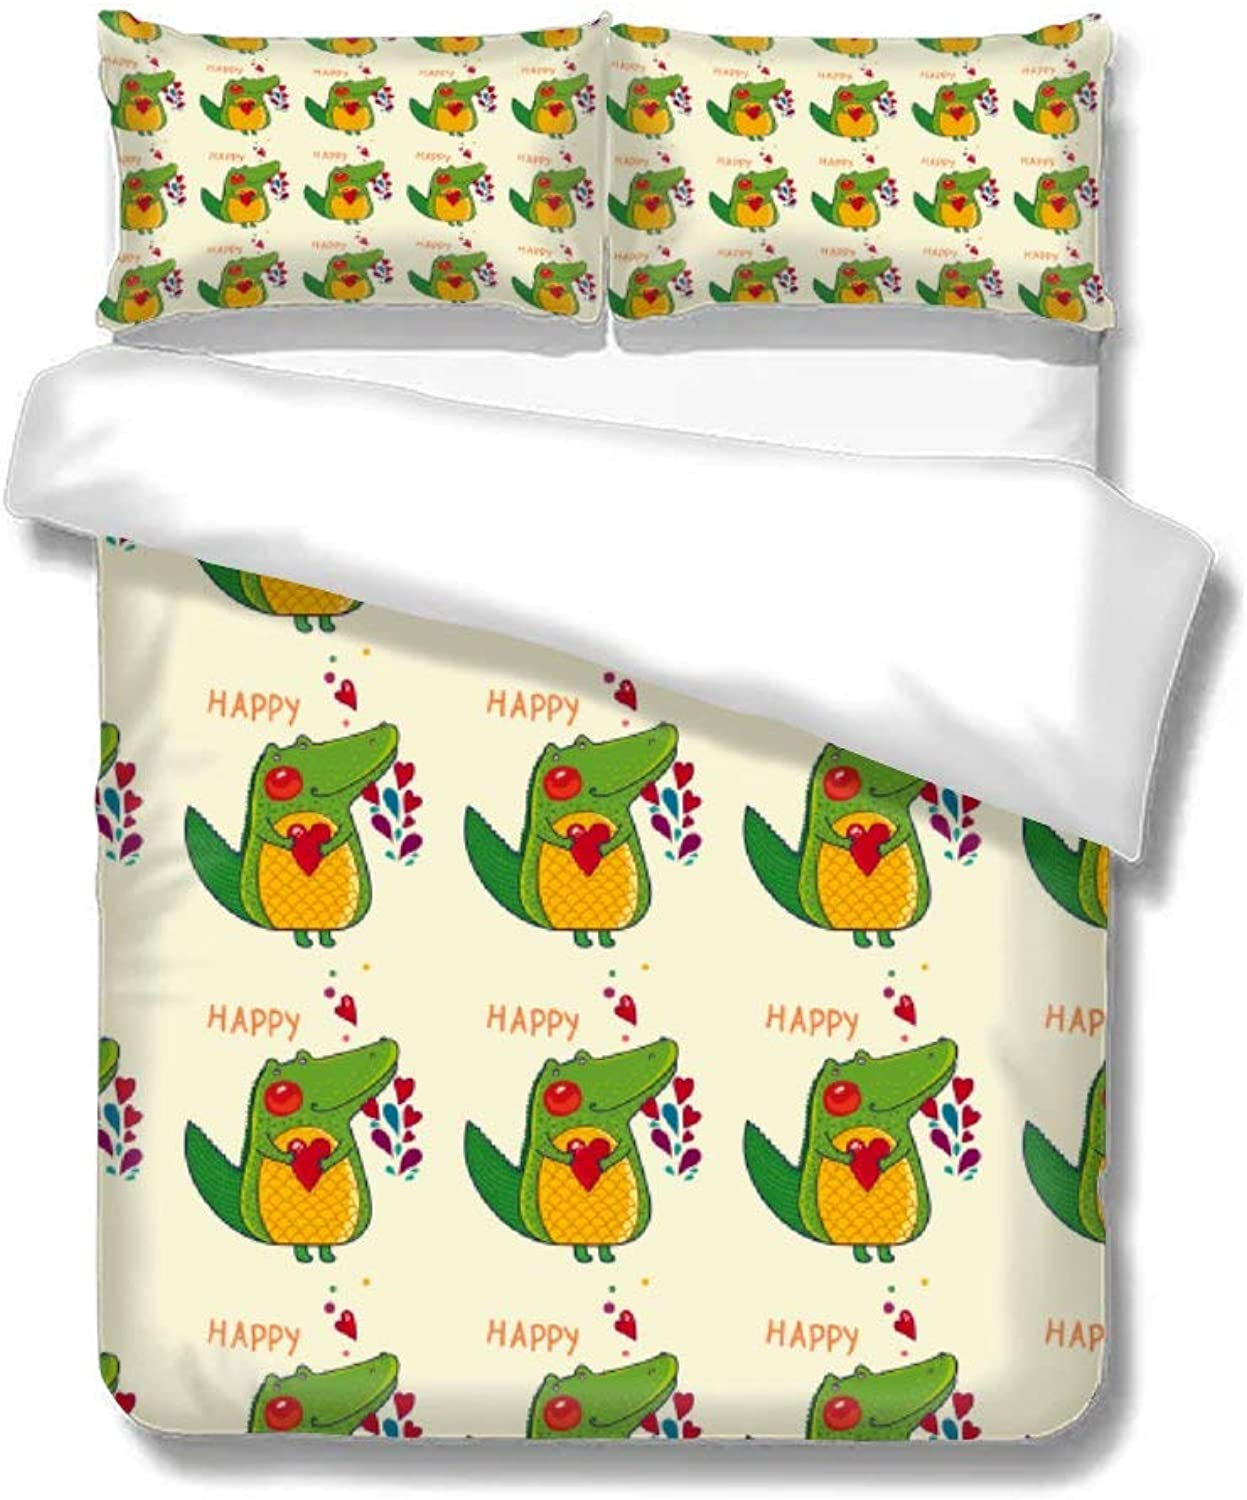 Home Bedding Duvet Cover Set Bed Sheets Set Set of Three On The Bed Crocodile Happy Animal Heart Soft Comfortable Breathable Twin Size